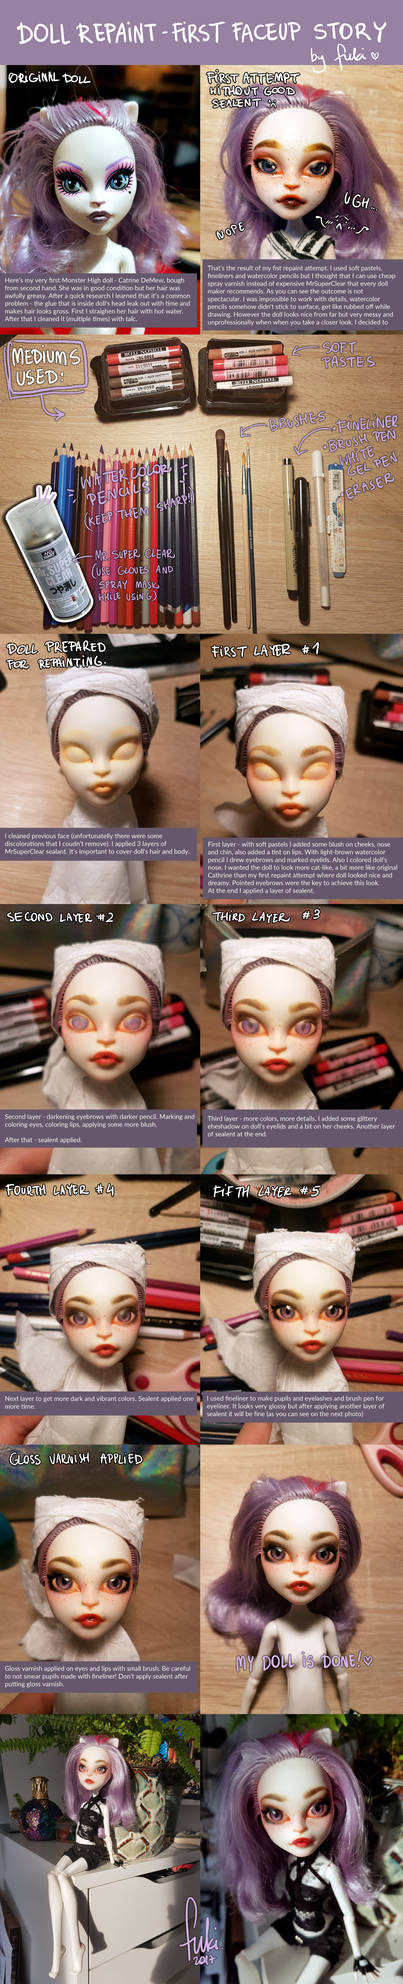 first faceup story